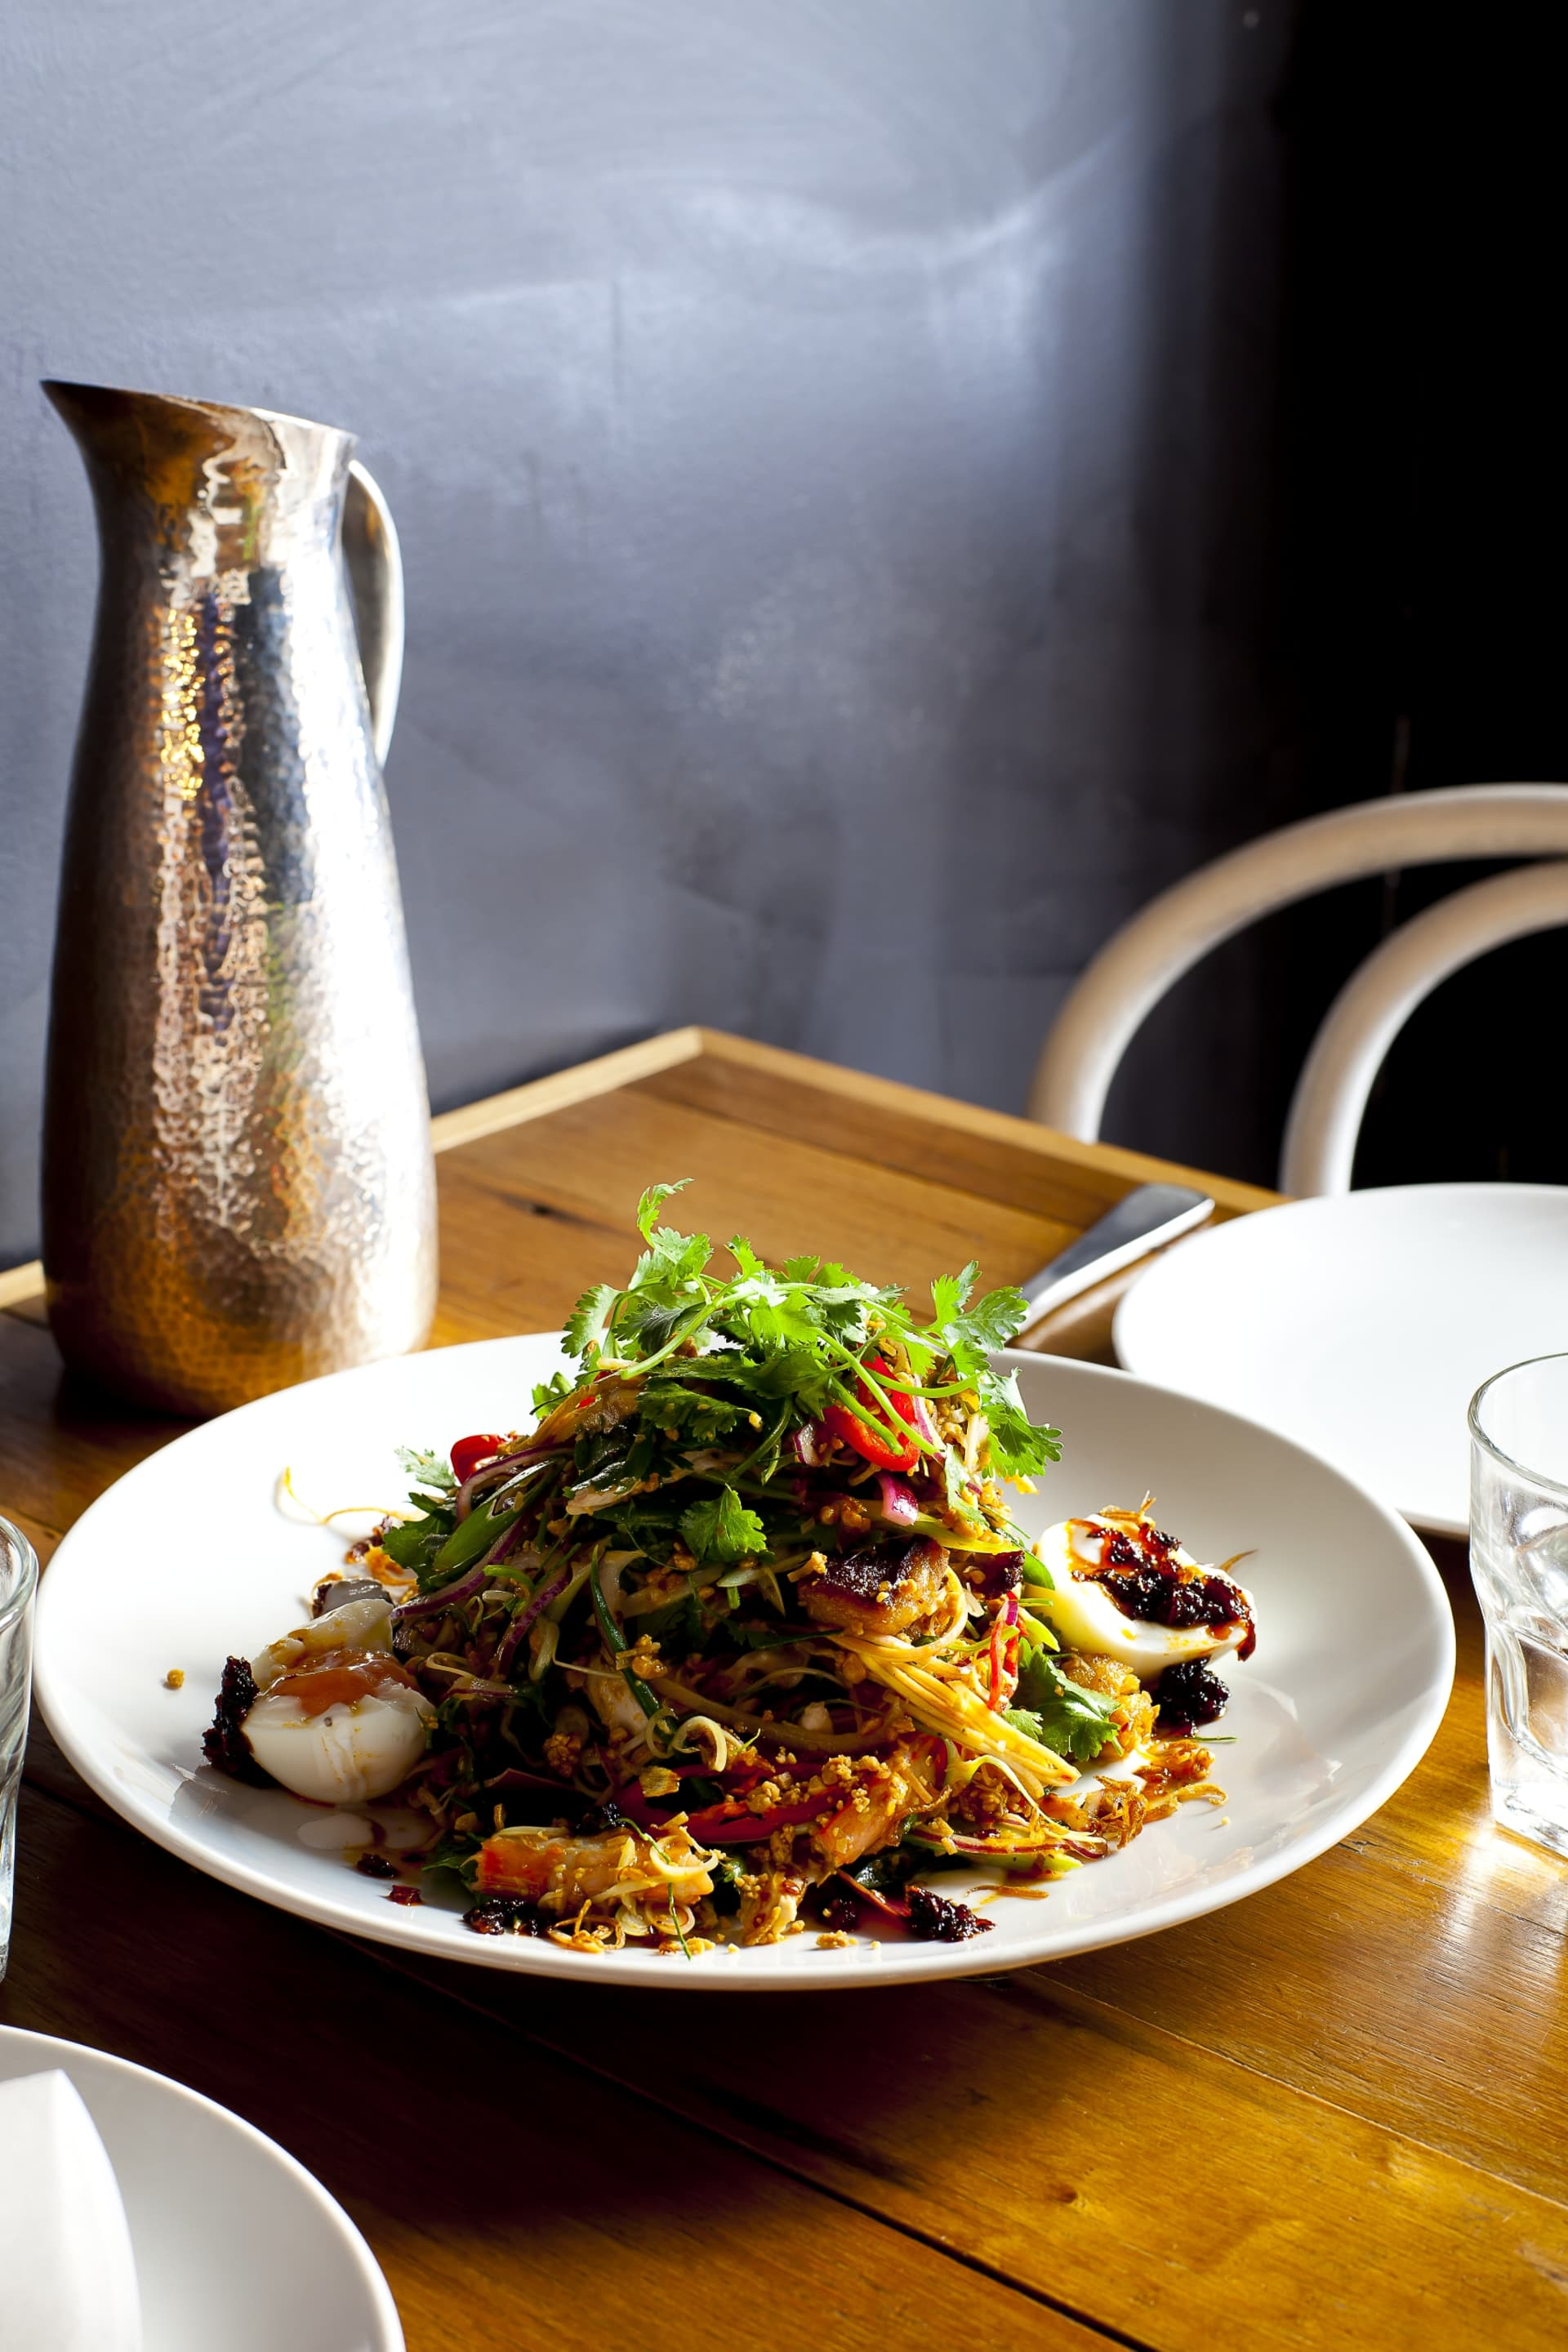 Chicken salad with chili, coconut, peanuts and crispy shallots at Peel St.